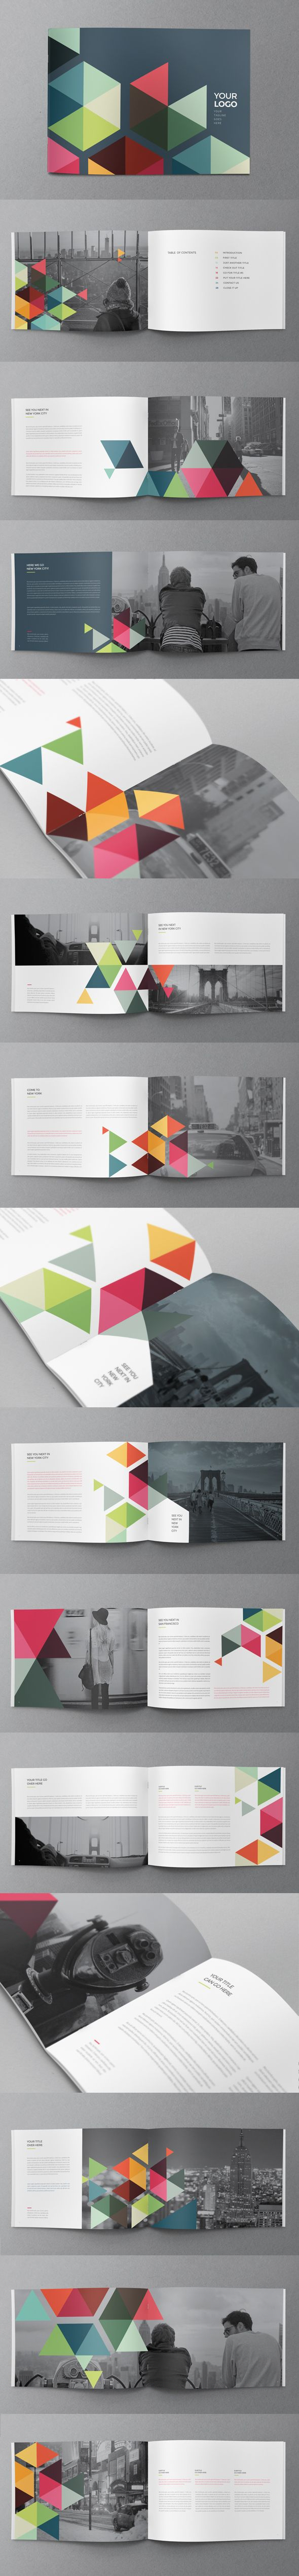 Business Colorful Brochure. Download here: http://graphicriver.net/item/business-colorful-brochure/10859836?ref=abradesign #brochure #template #graphicriver #design